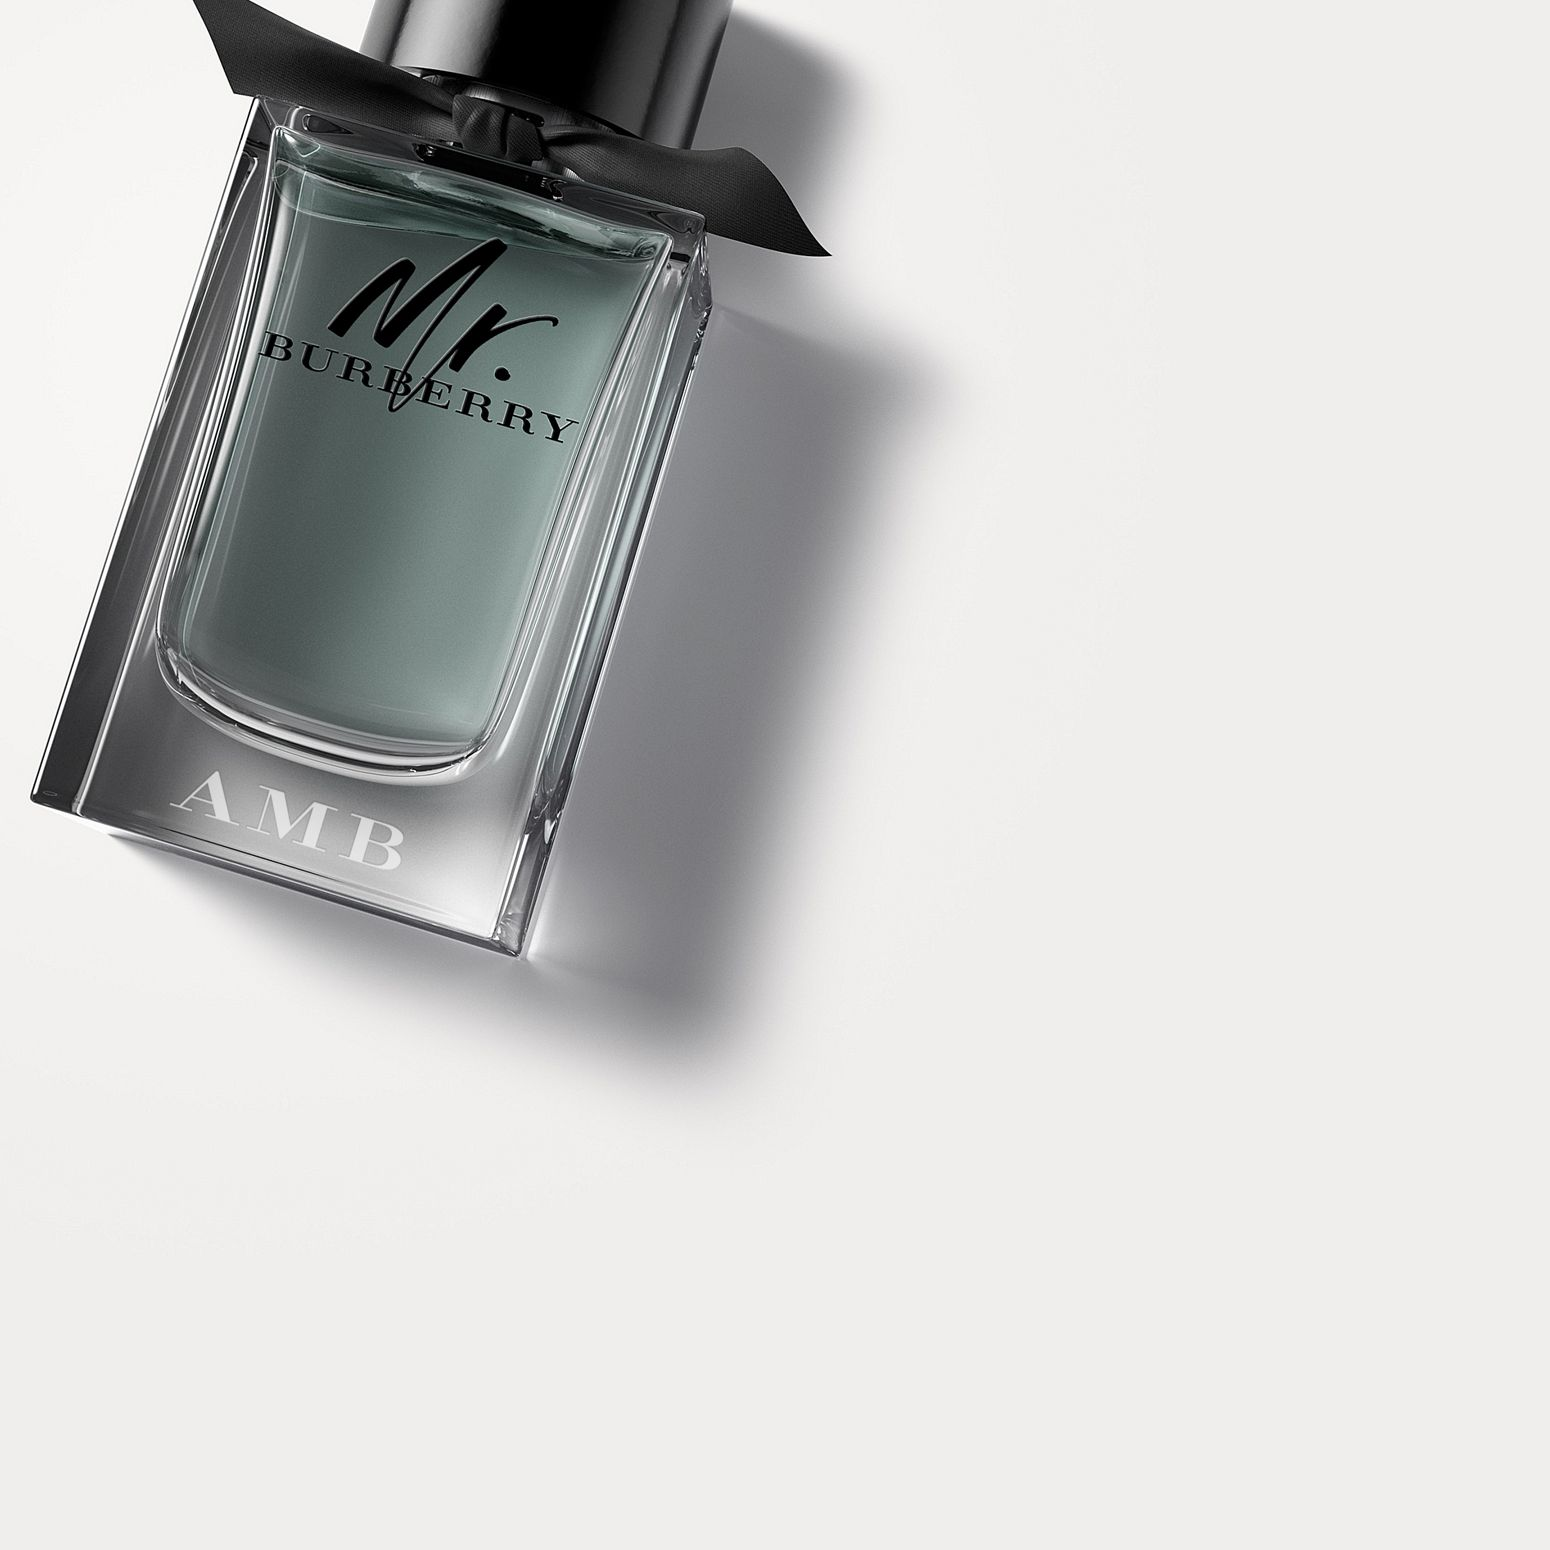 Eau de Toilette Mr. Burberry 150 ml - photo de la galerie 1